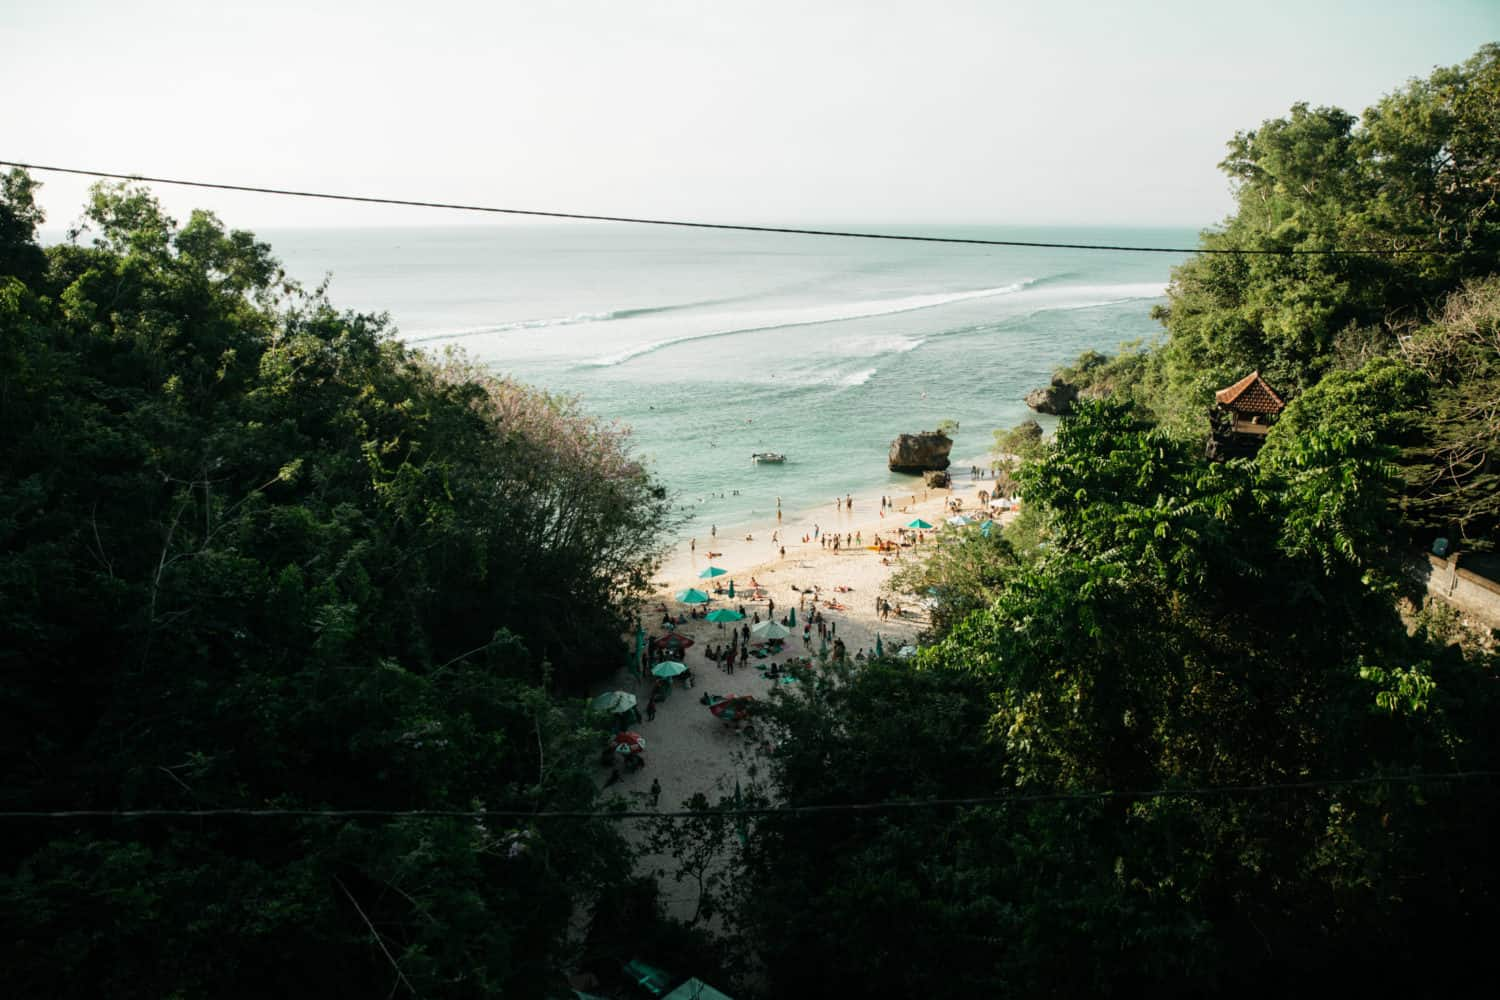 We're sharing 10 best instagram spots in Bali! Click here for amazing Bali photo locations, Indonesia inspiration, and more! #indonesia #bali